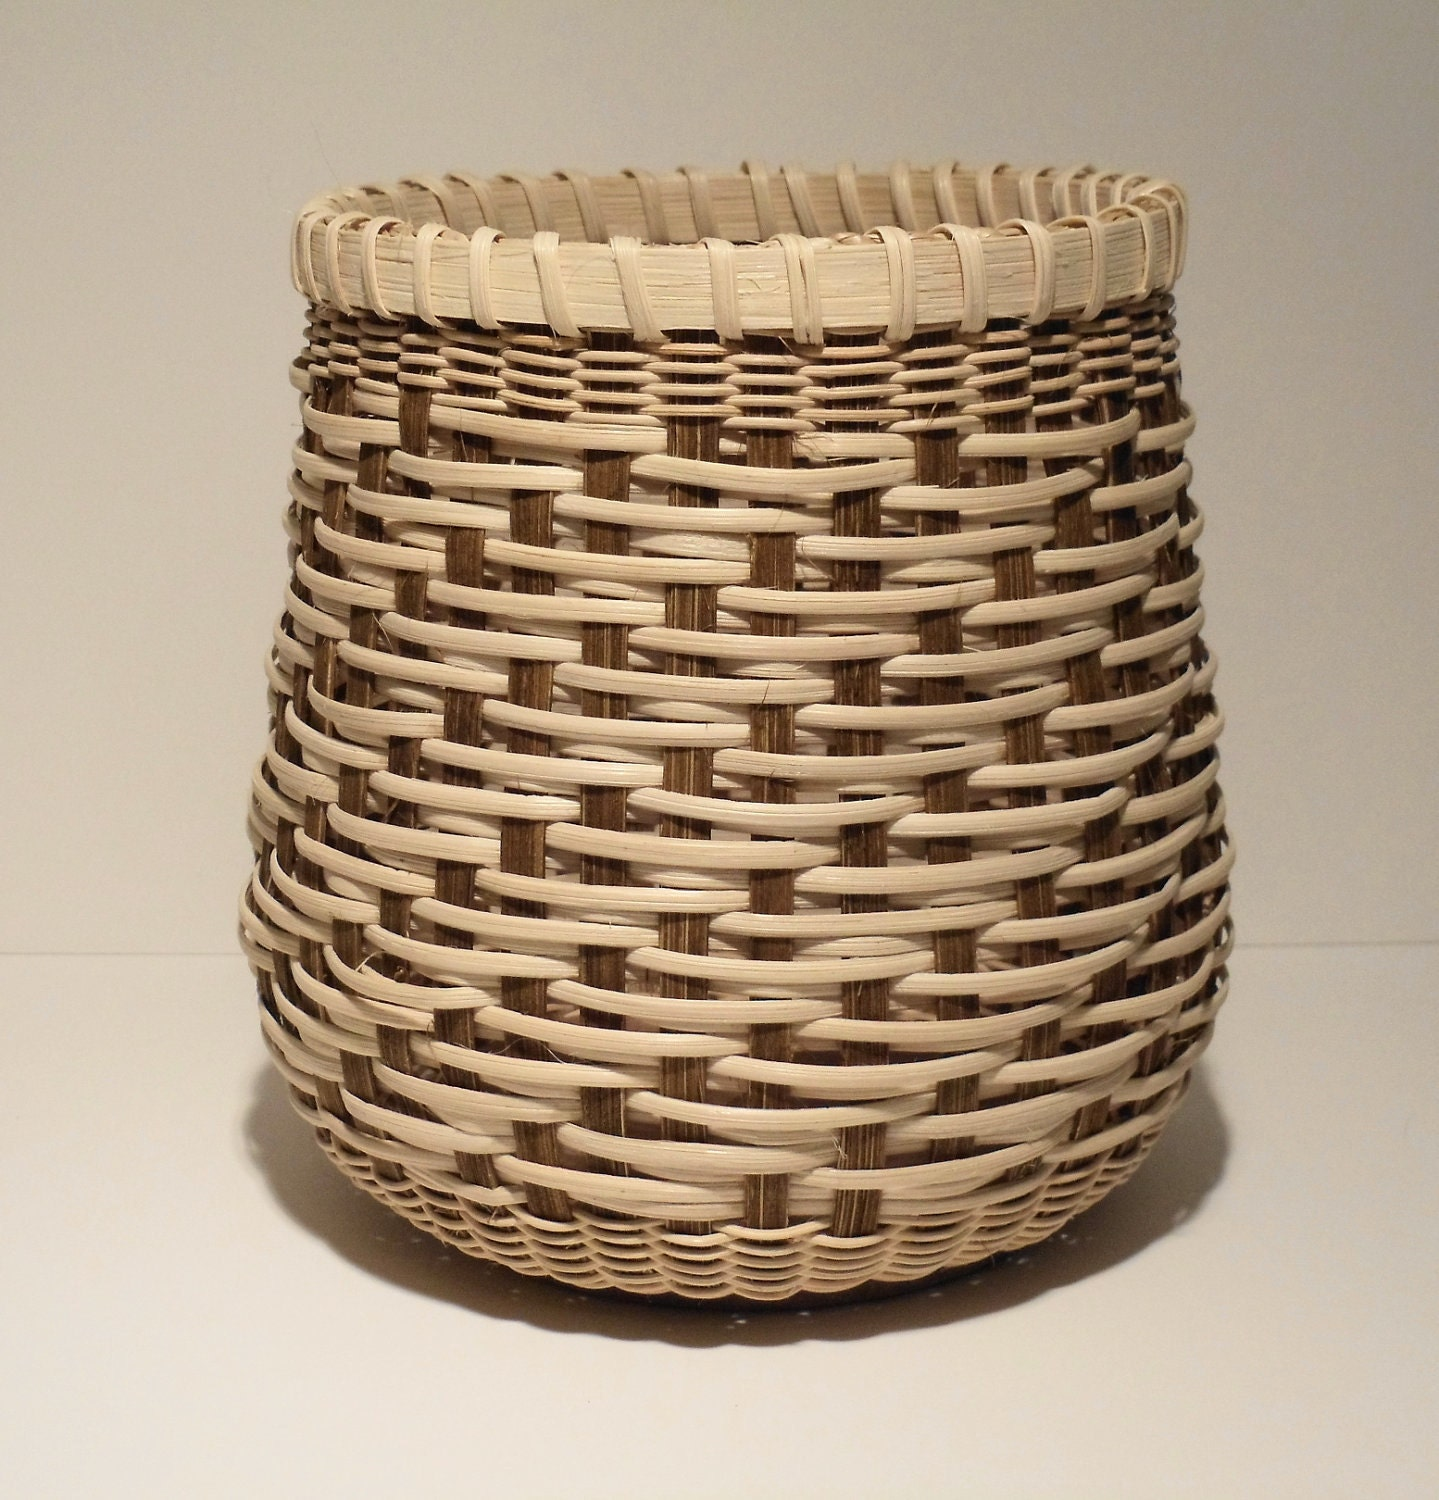 Basket Weaving Star Pattern : Woven twill basket in brown and natural reed